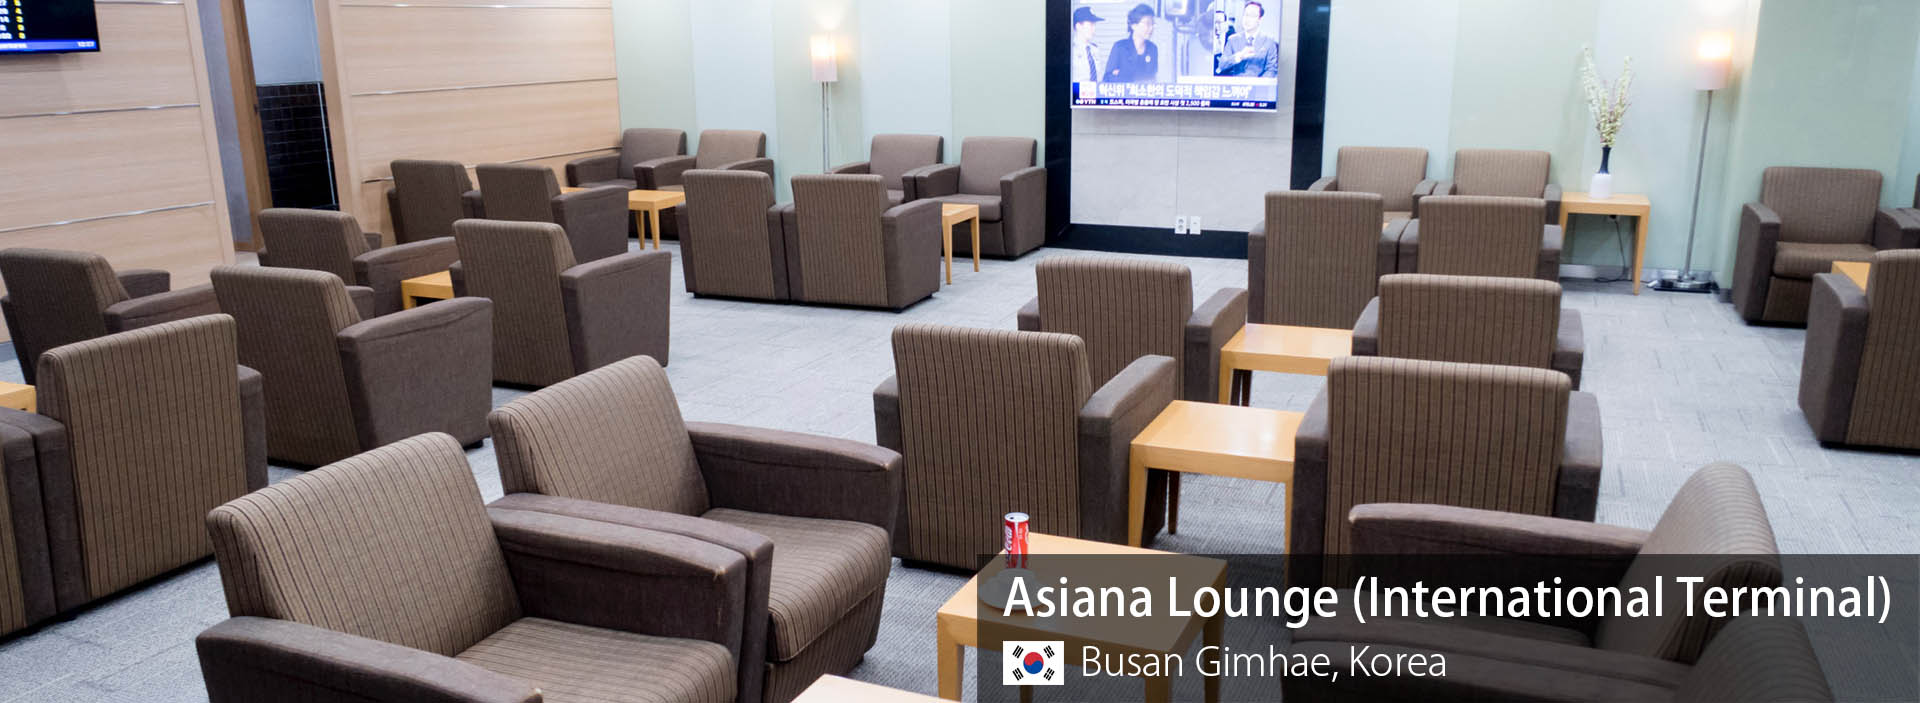 Lounge Review: Asiana Lounge (International Terminal) at Busan Gimhae